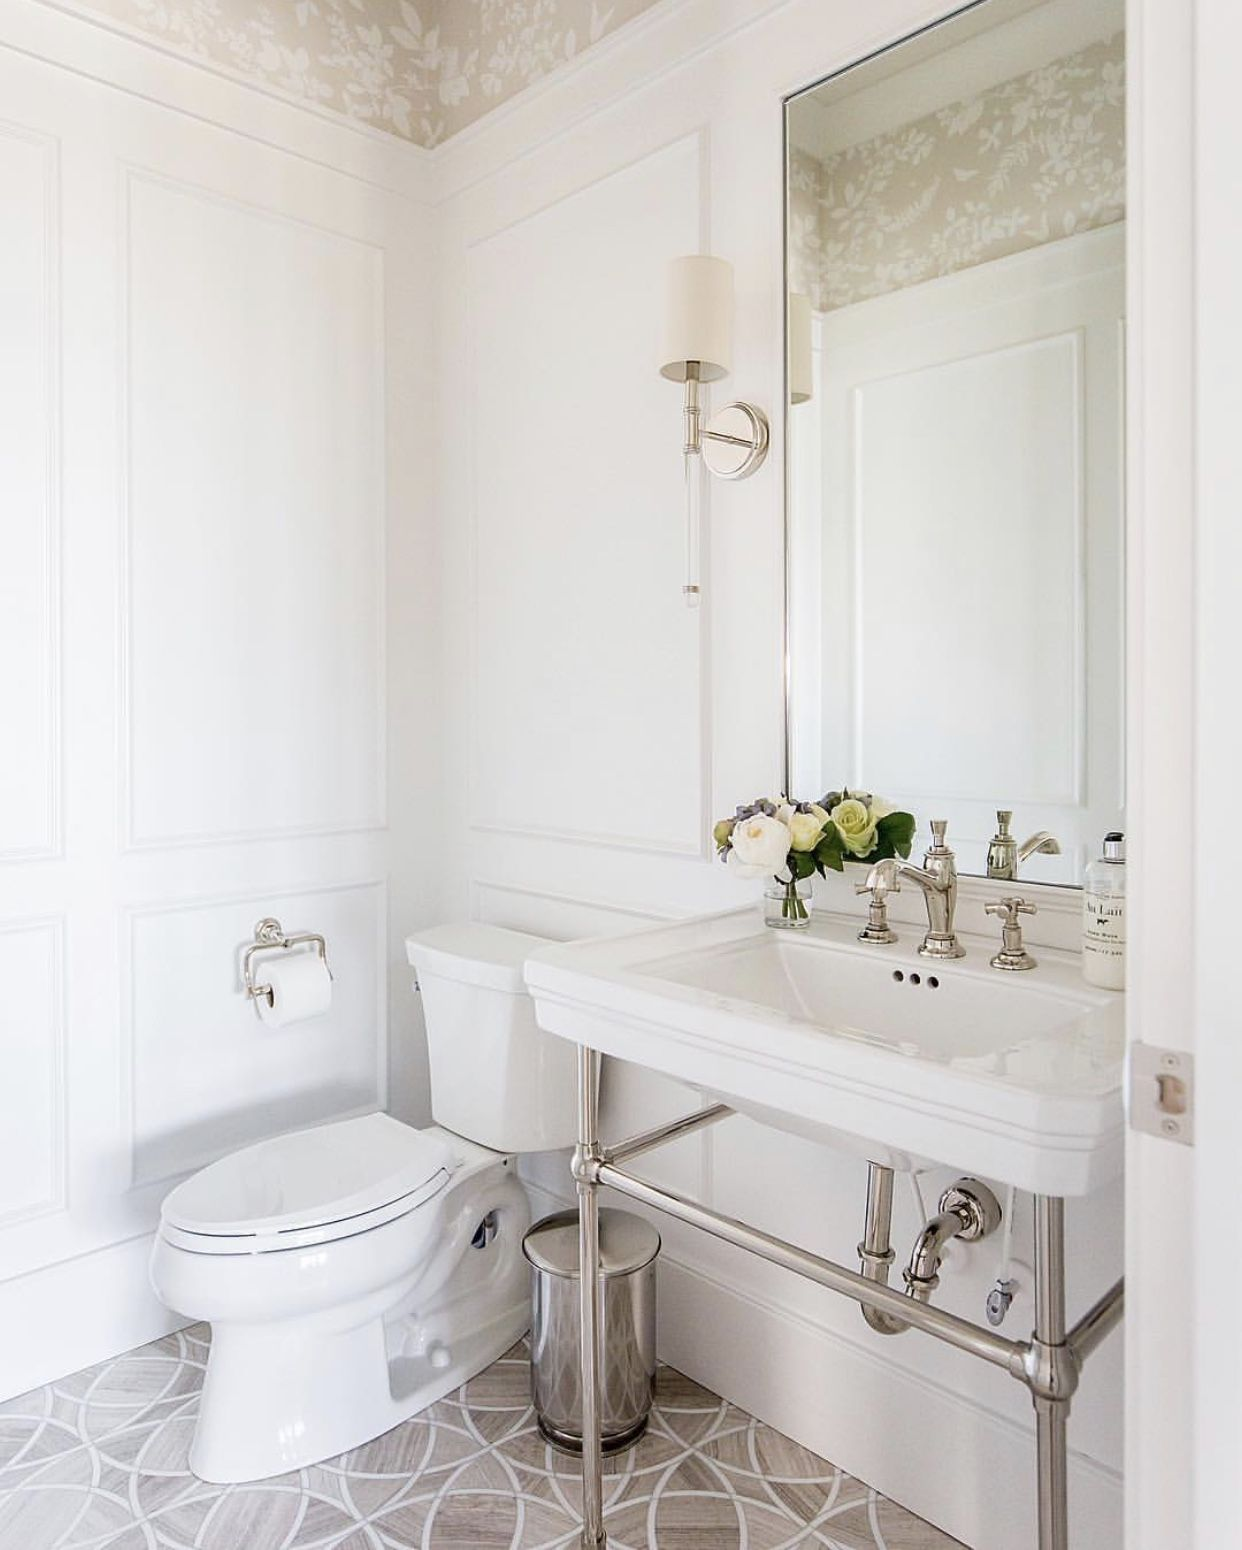 Pin by Erika Howell on Bathrooms Mold in bathroom, New